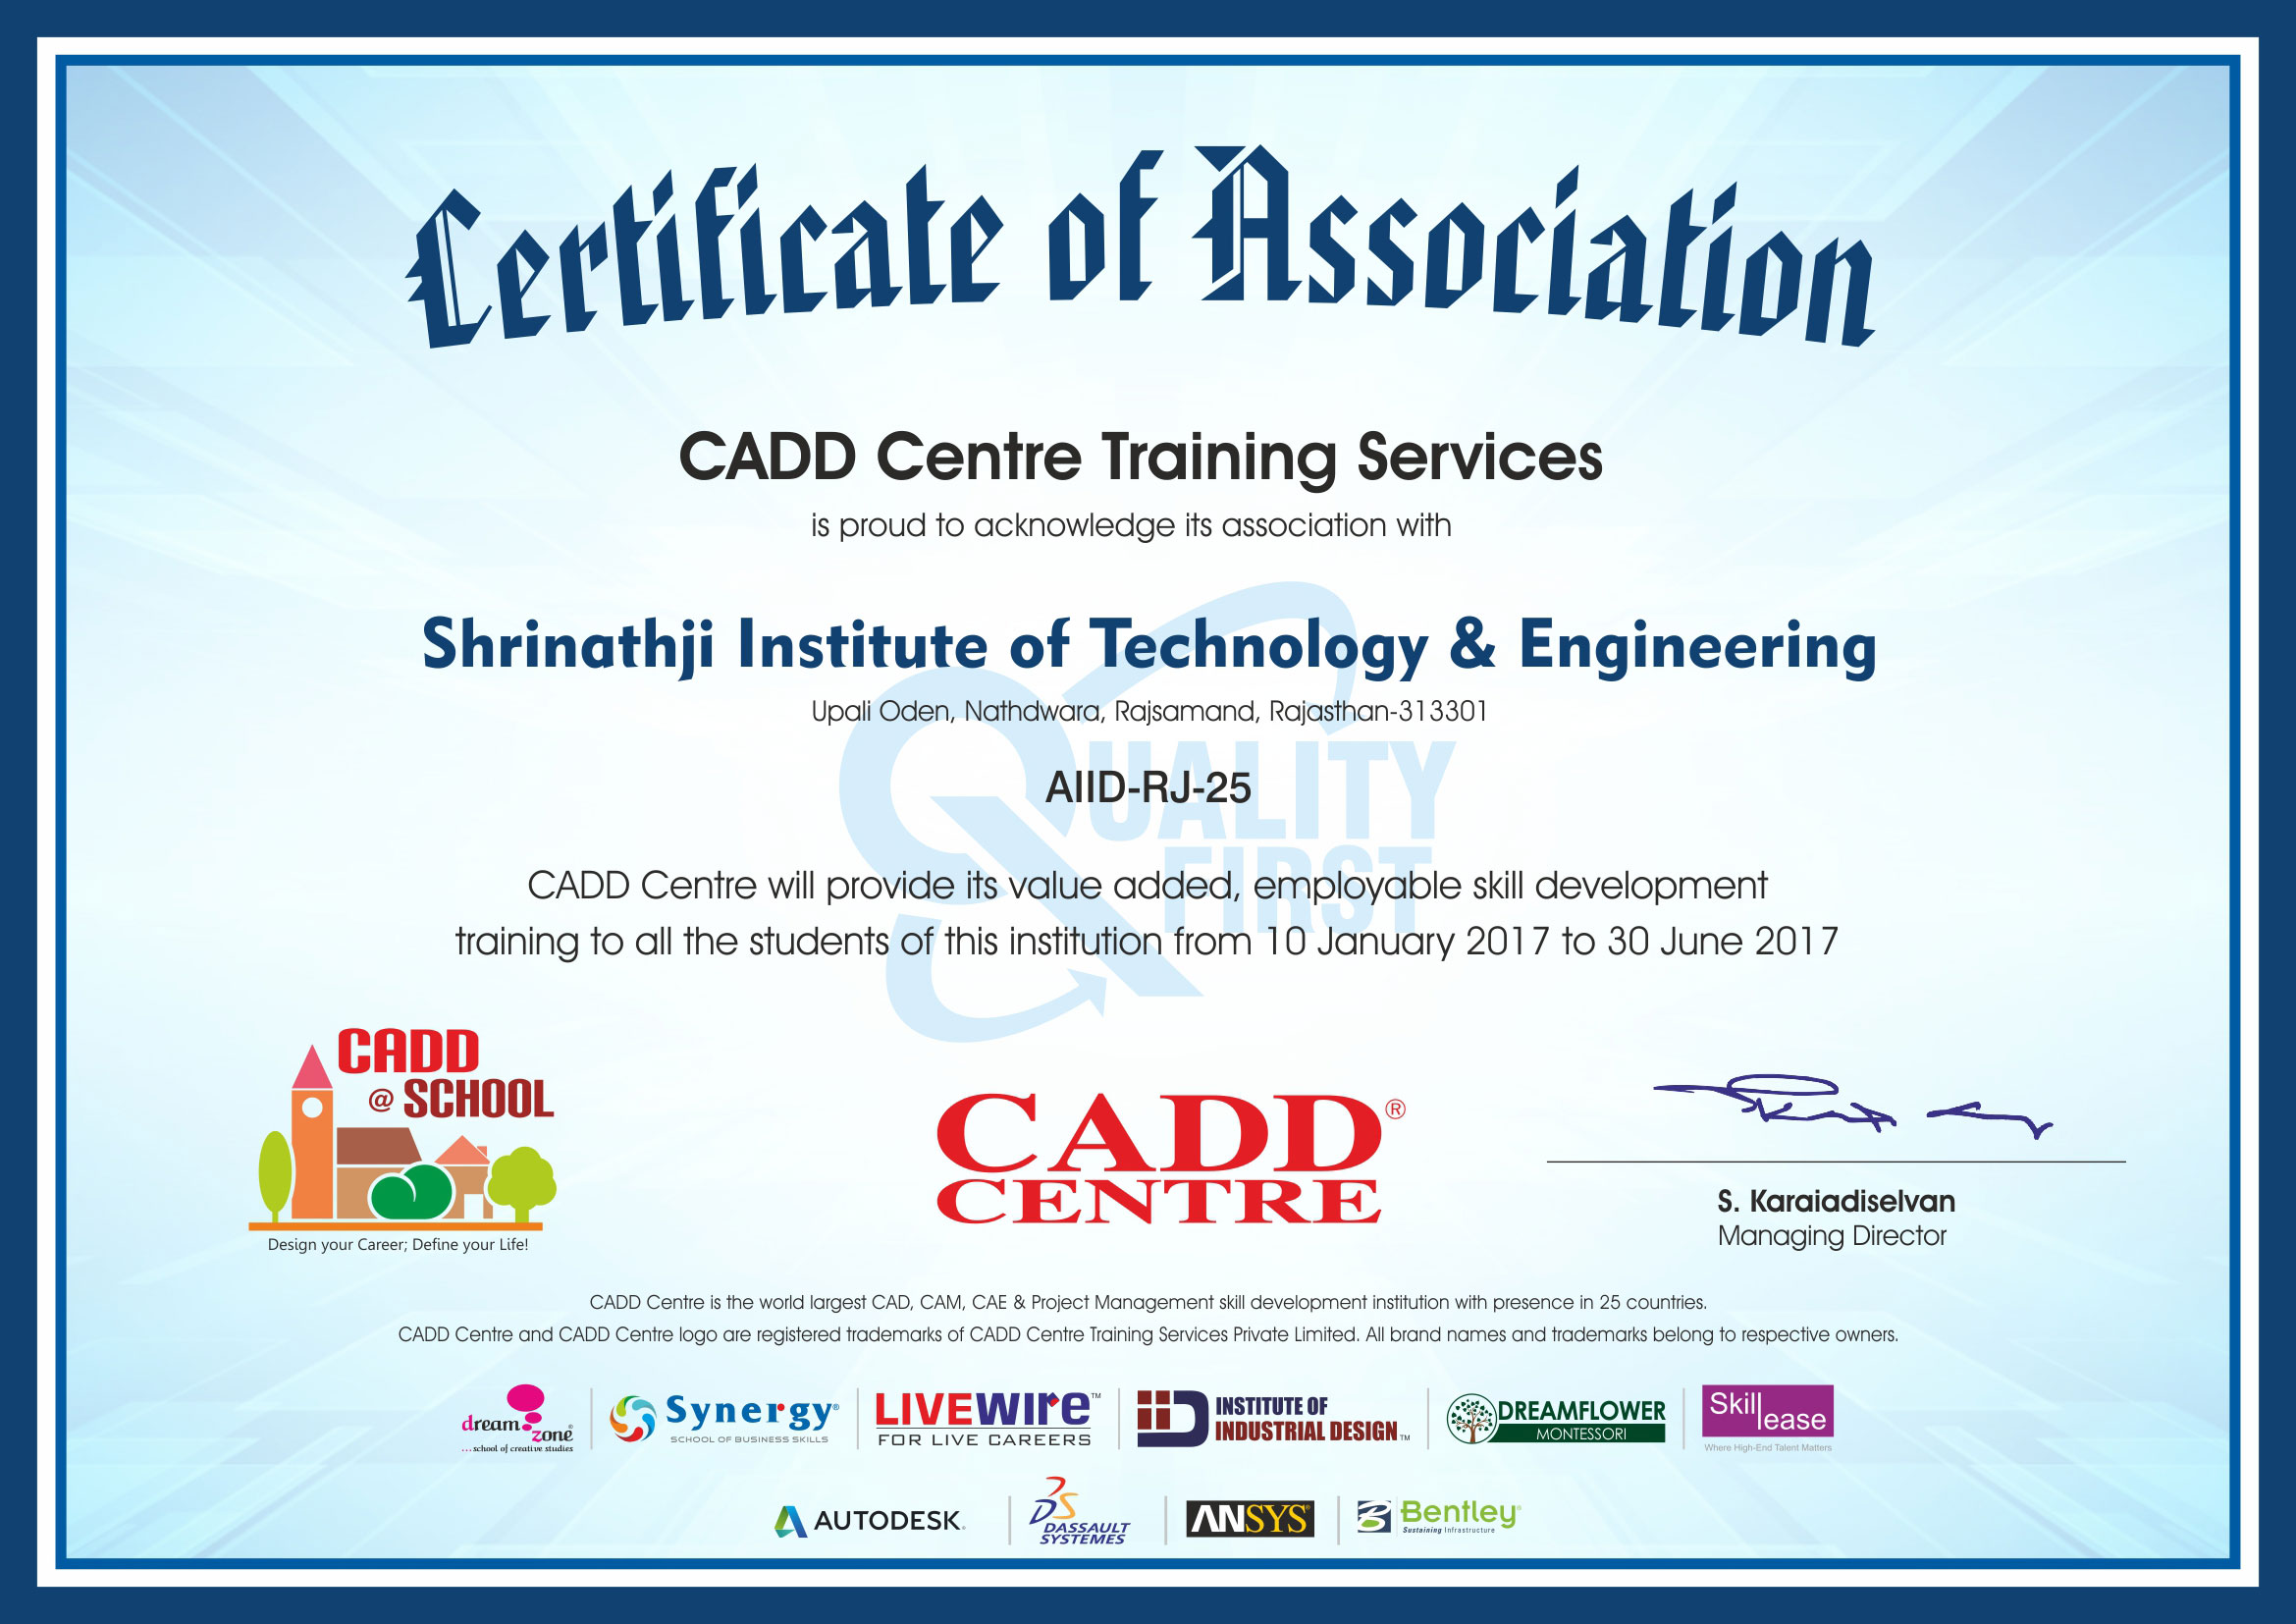 Shrinathji_Institute_Technology